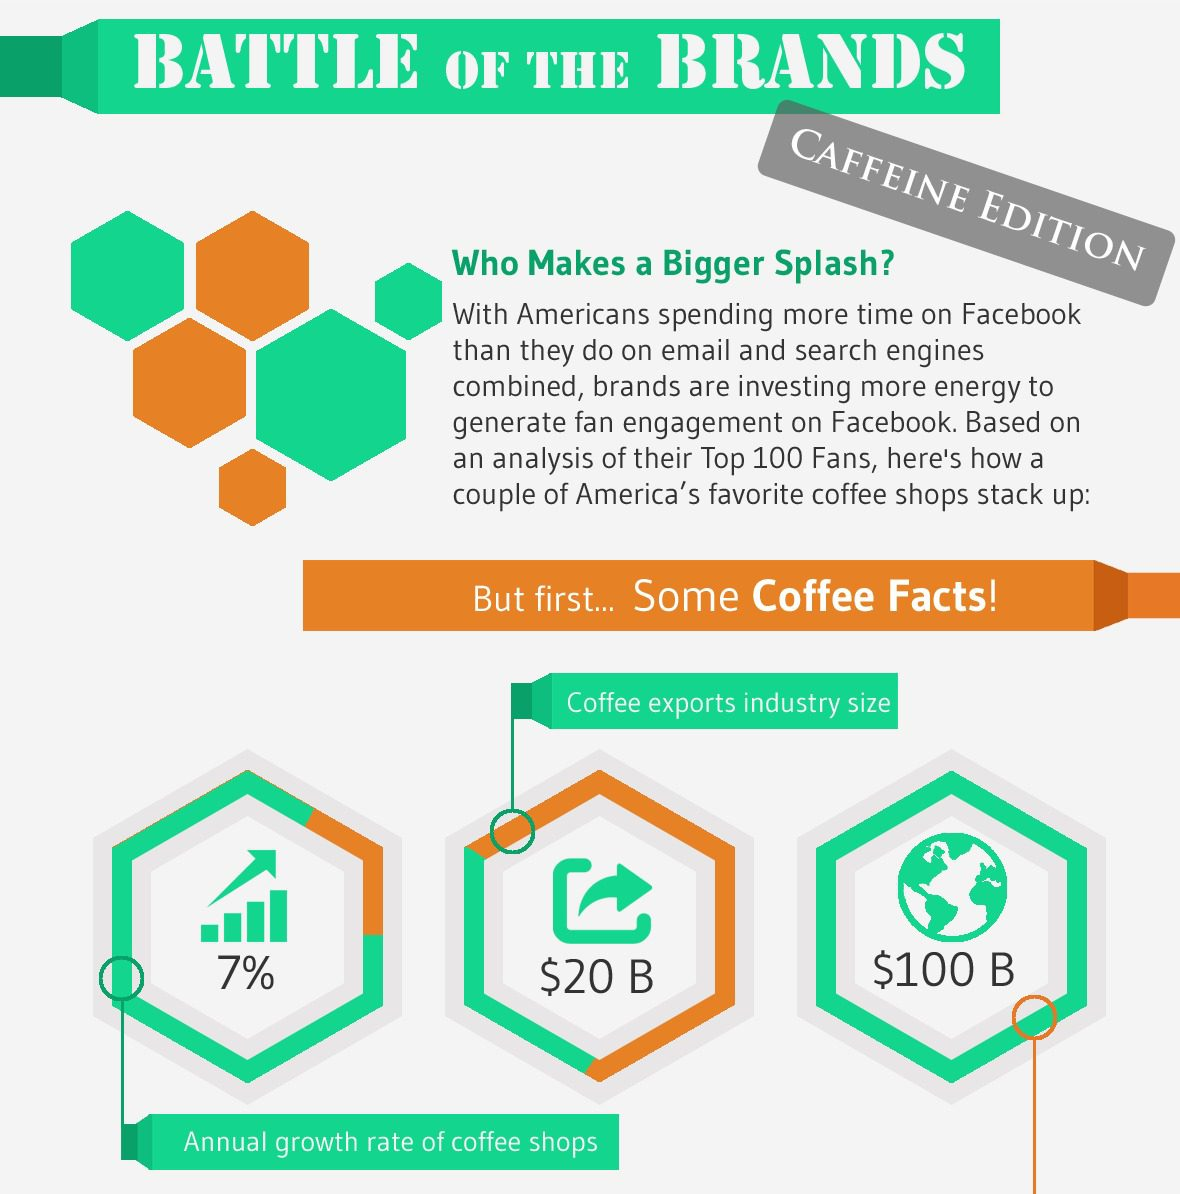 [Infographic] Comparing the Top Coffee Brands on Social Media